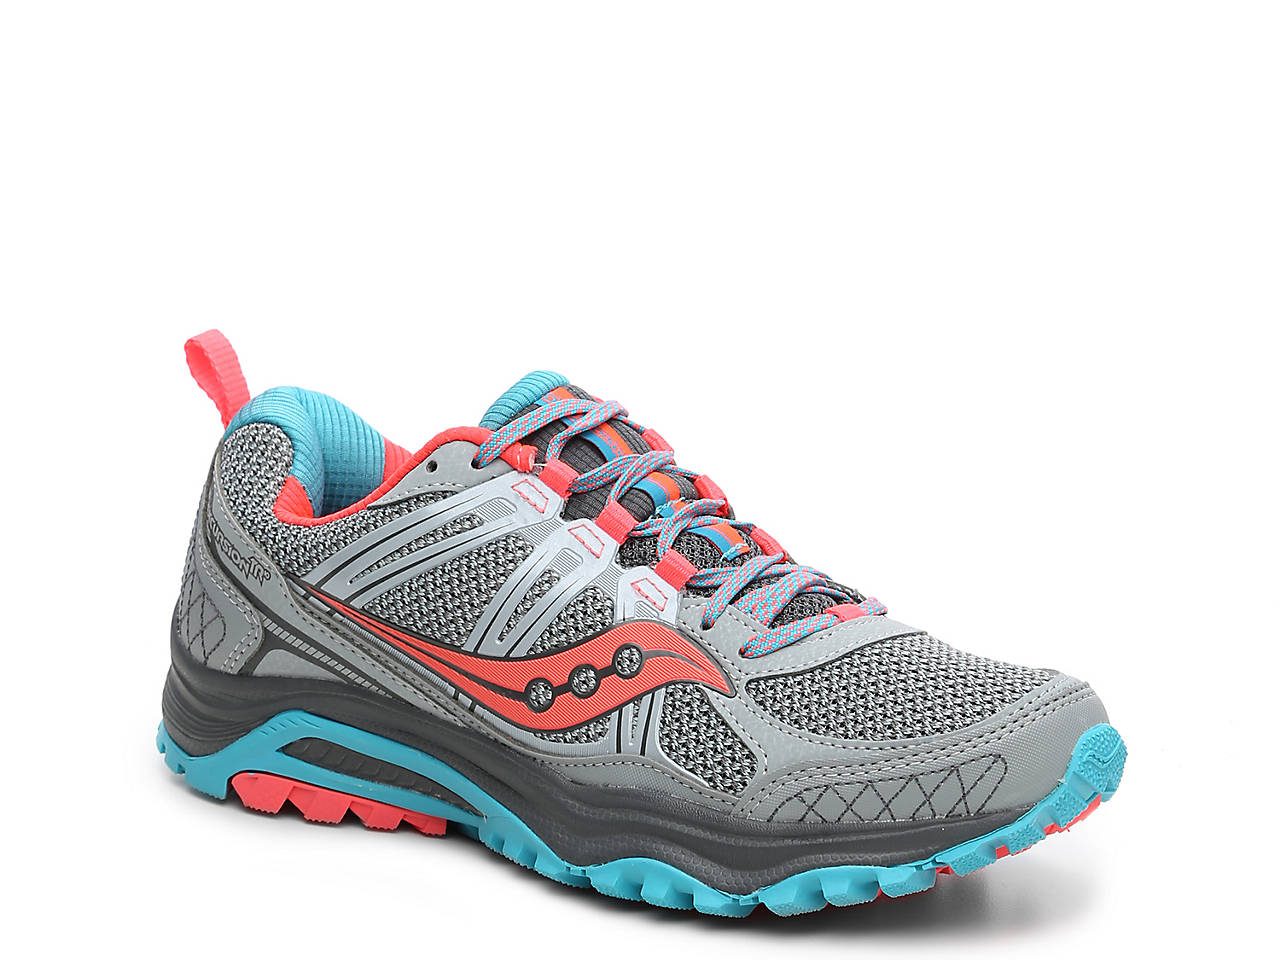 e0b010f5bb09 Saucony Grid Excursion TR 10 Trail Running Shoe - Women s Women s ...